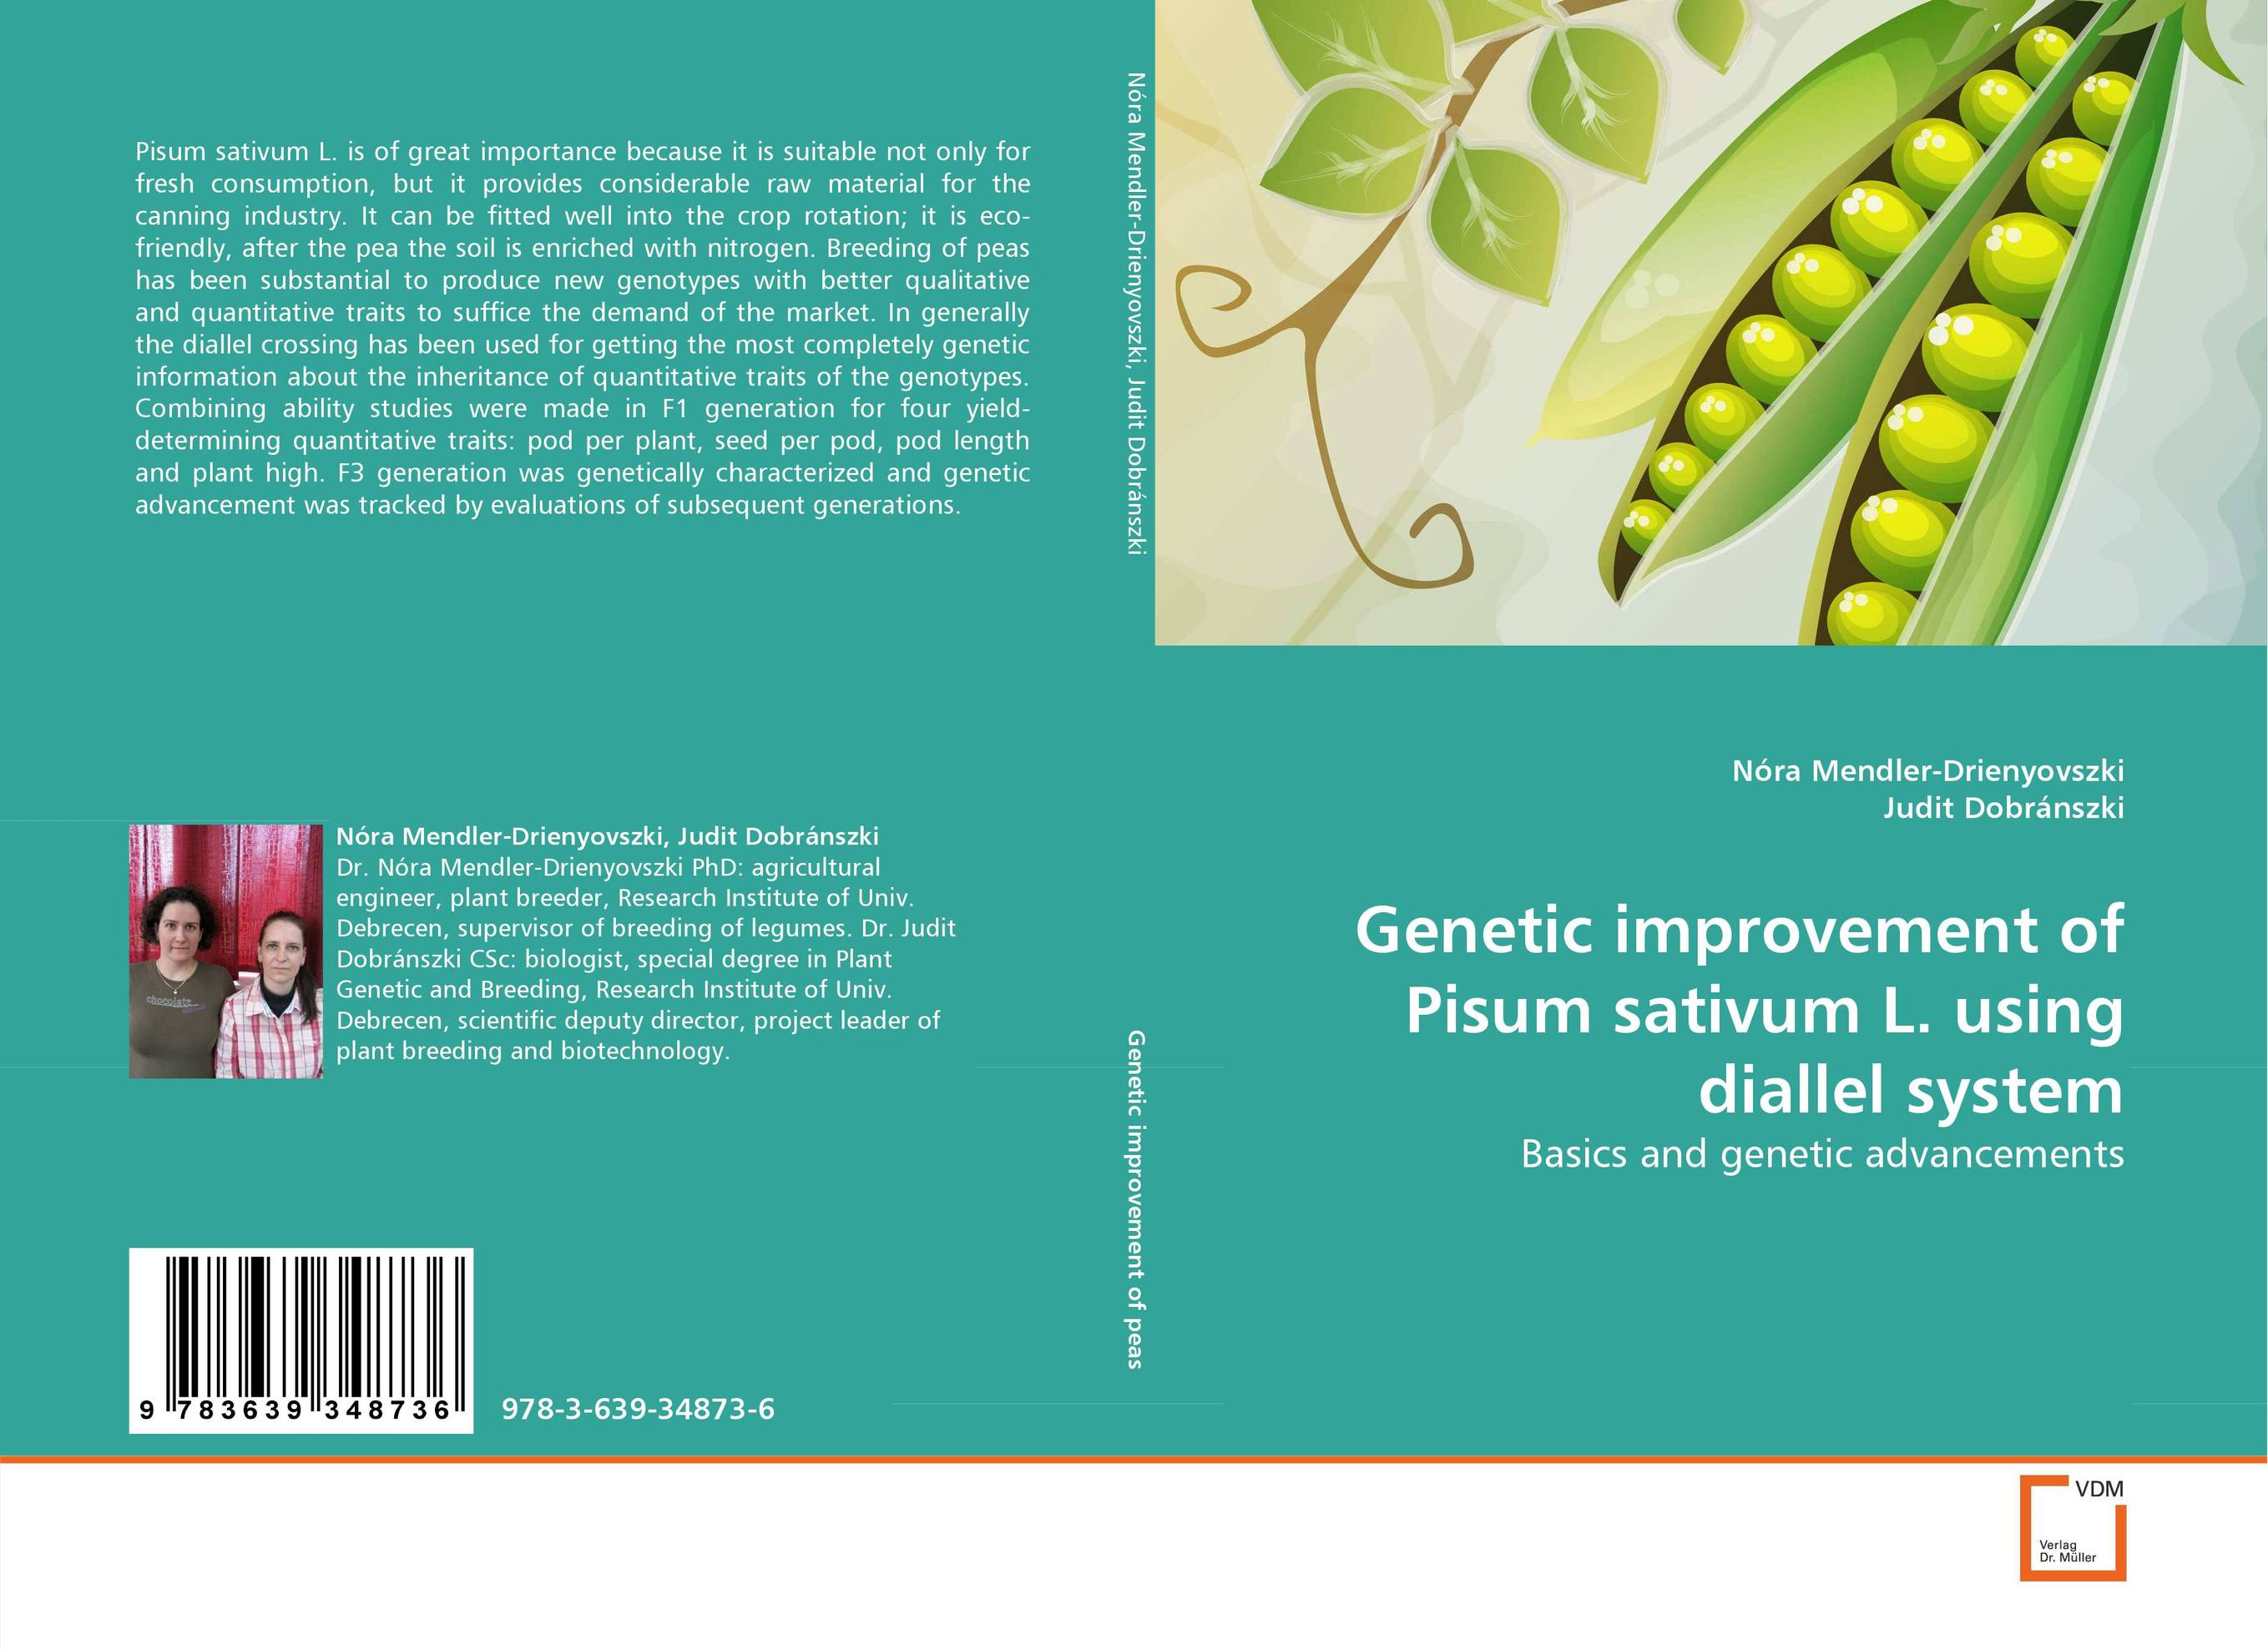 Genetic improvement of Pisum sativum L. using diallel system mylsamy prabhakaran and sanniyasi elumalai application of genetic engineering in pigeon pea crop improvement